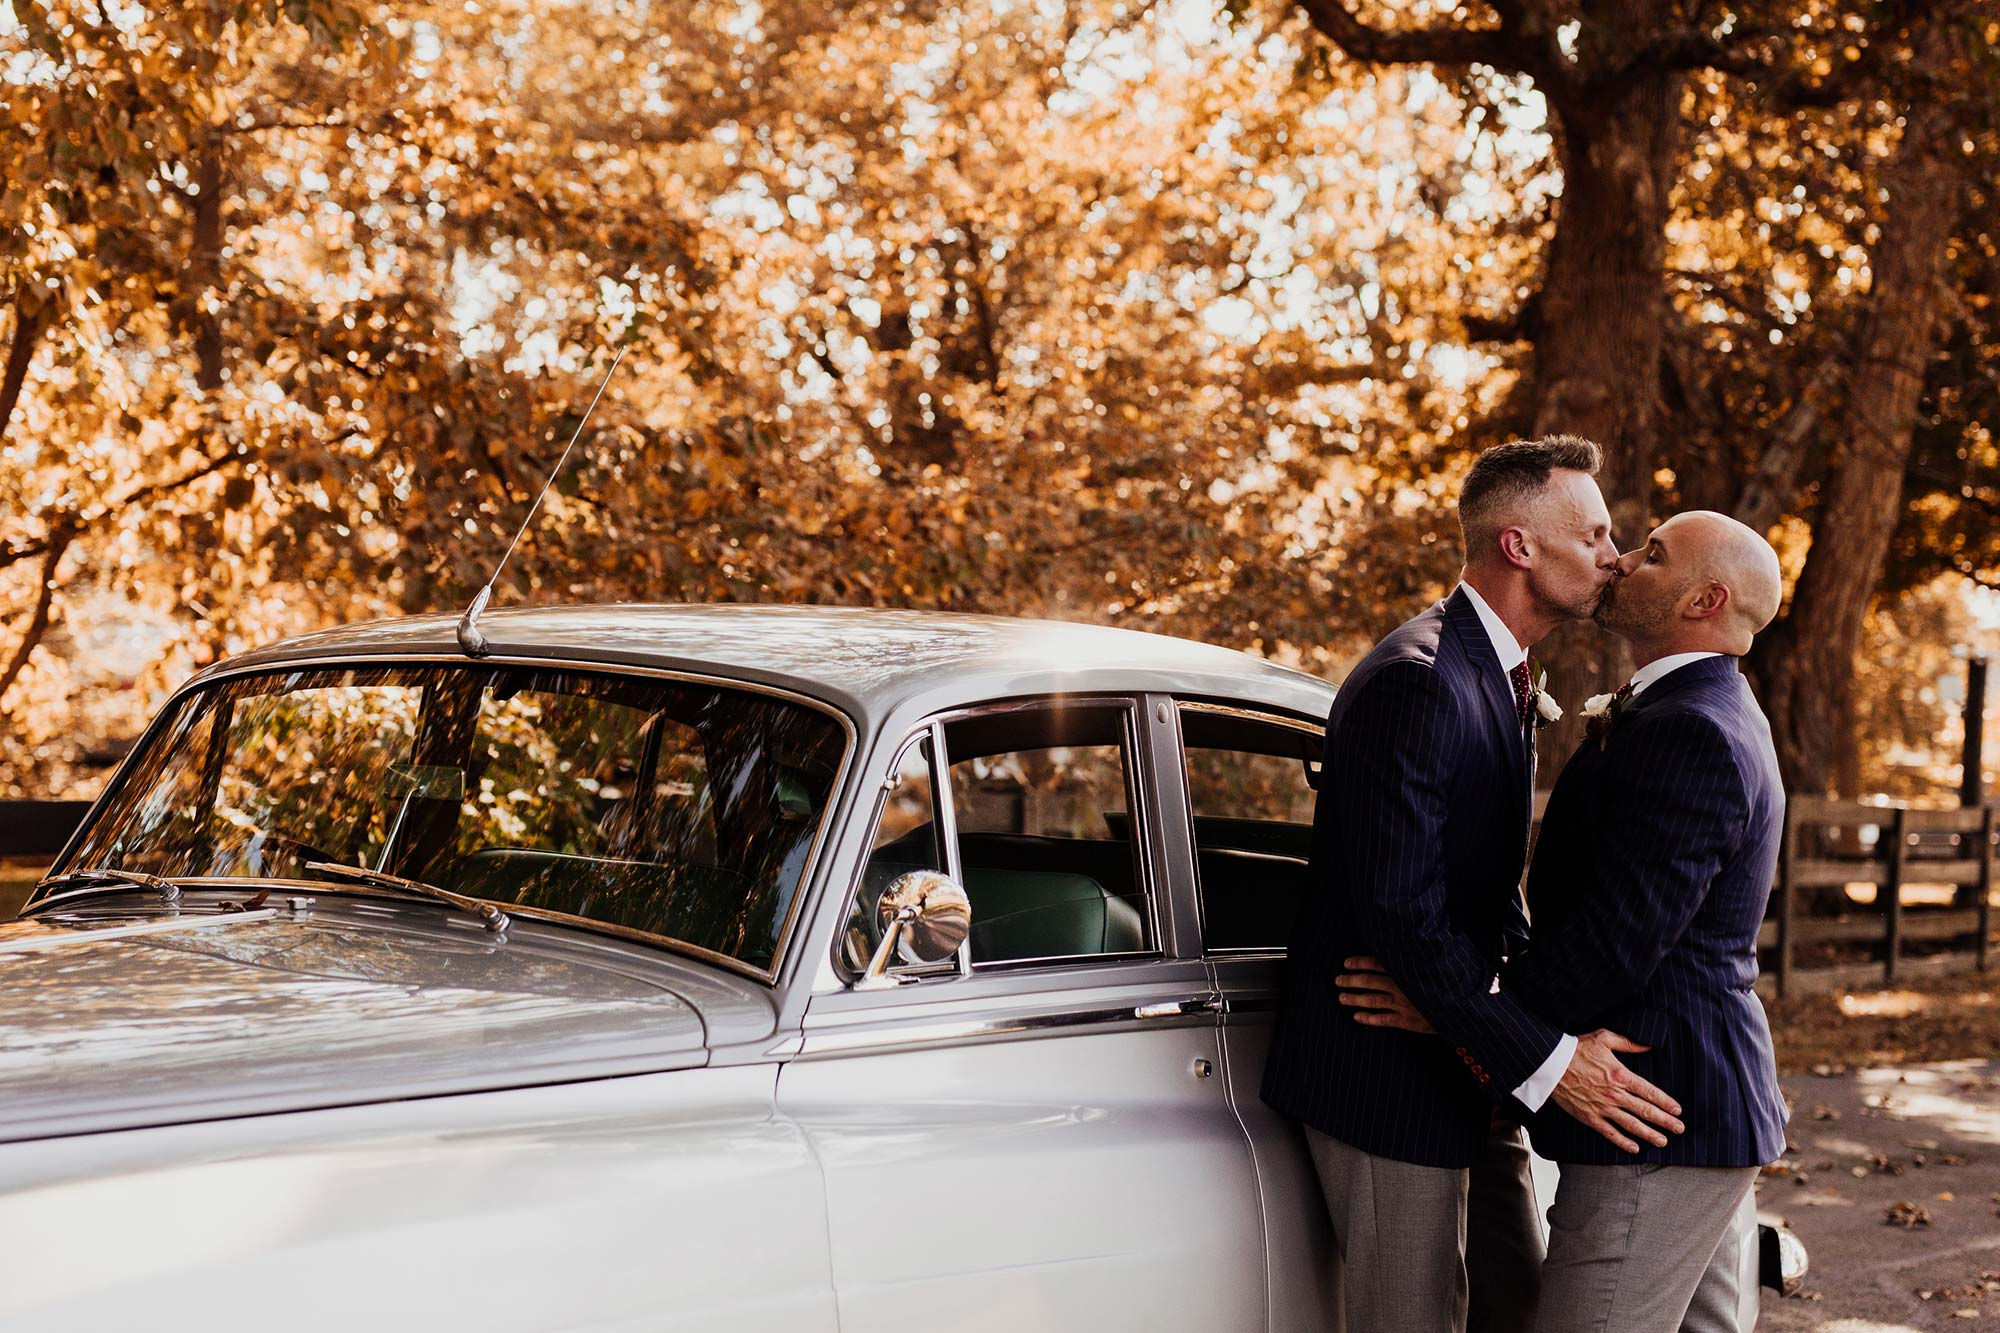 LGBTQ Louisville Kentucky Wedding at Hermitage Farm Crystal Ludwick Photo kiss by vintage car